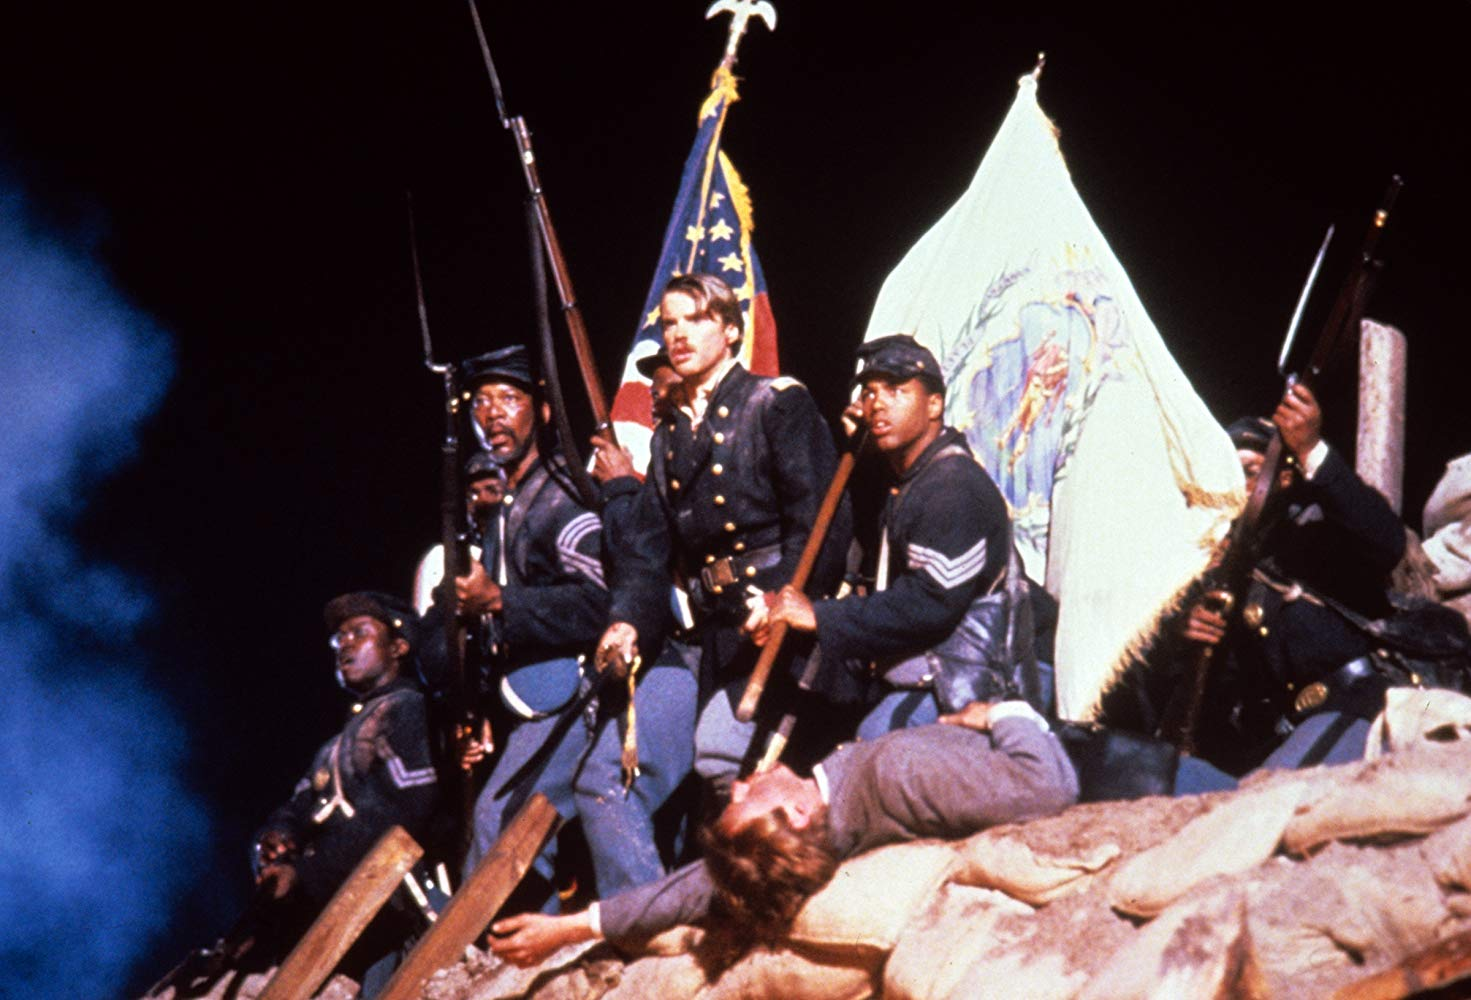 Andre Braugher with Cary Elwes, Morgan Freeman, and Mark A. Jones in Glory